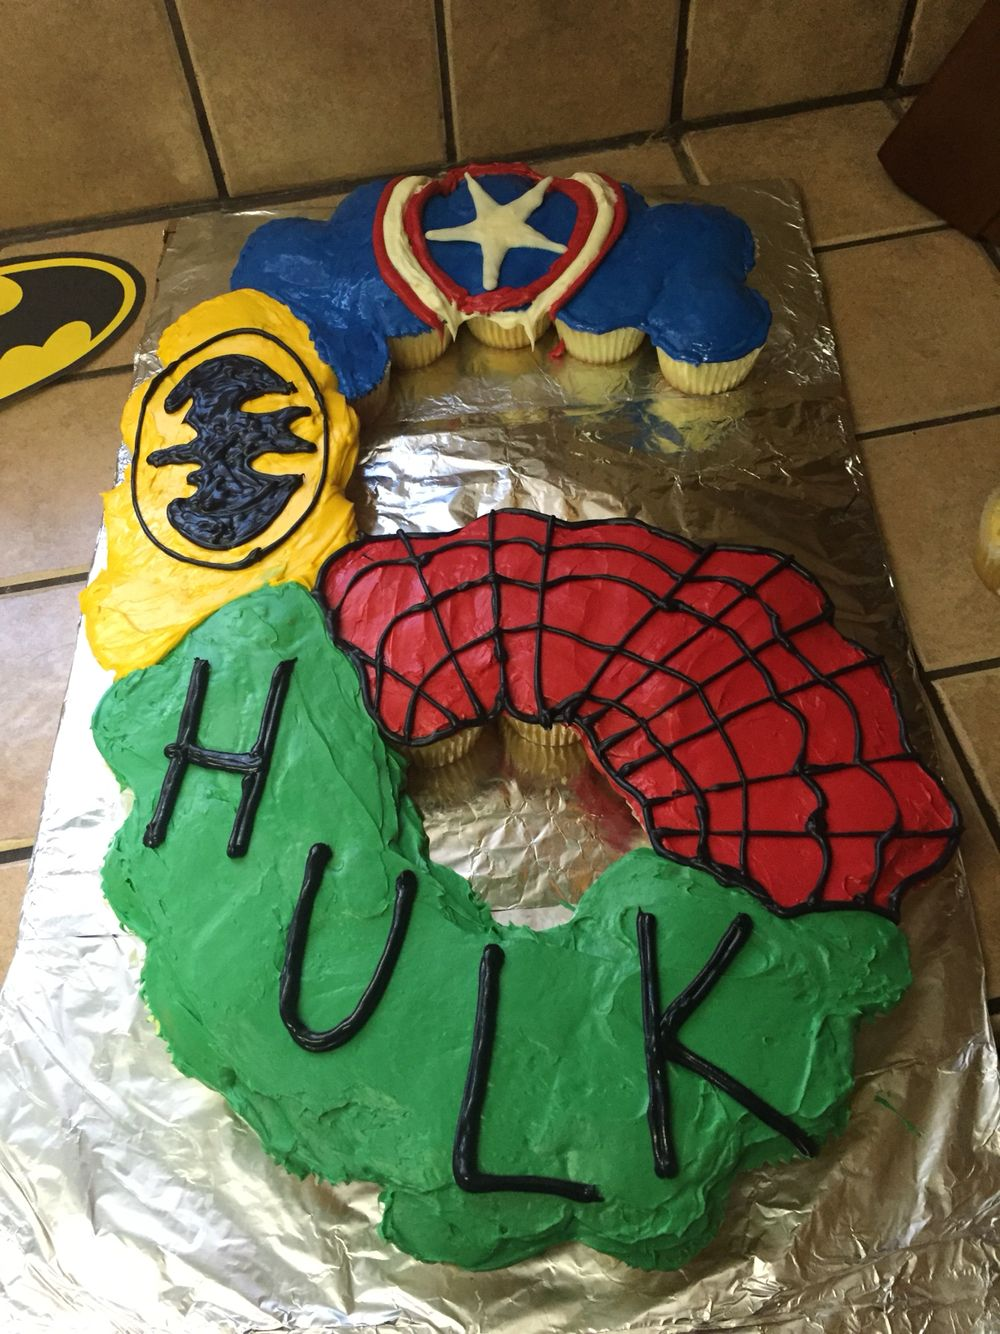 superhero cake made from cupcakes for a 6 year old's birthday party